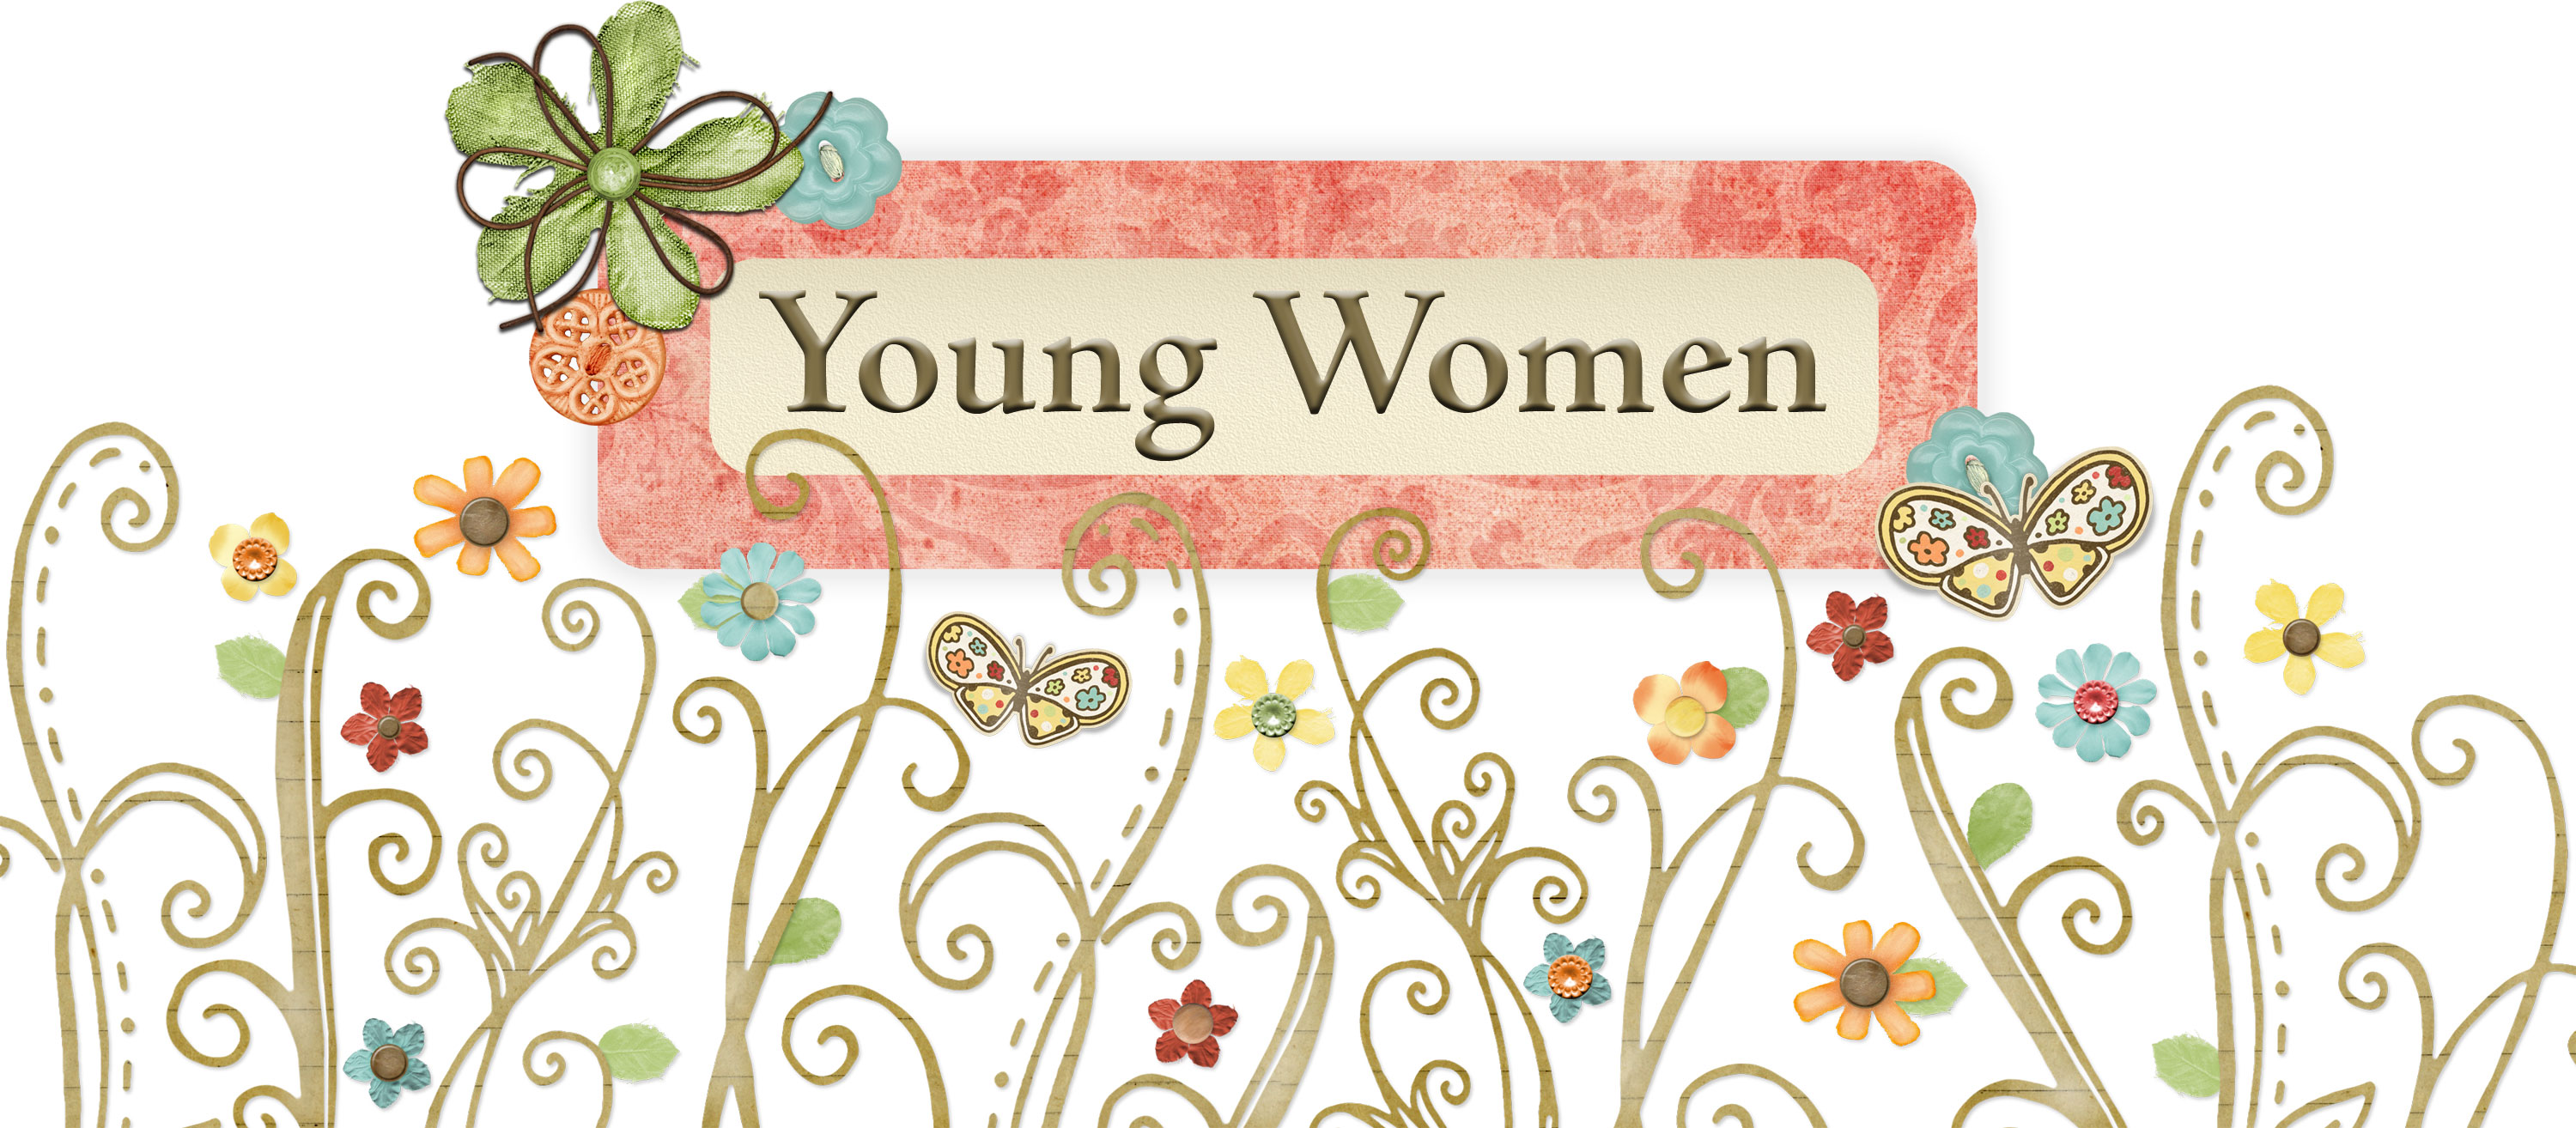 Young Women Class Names And Symbols Young Women Theme